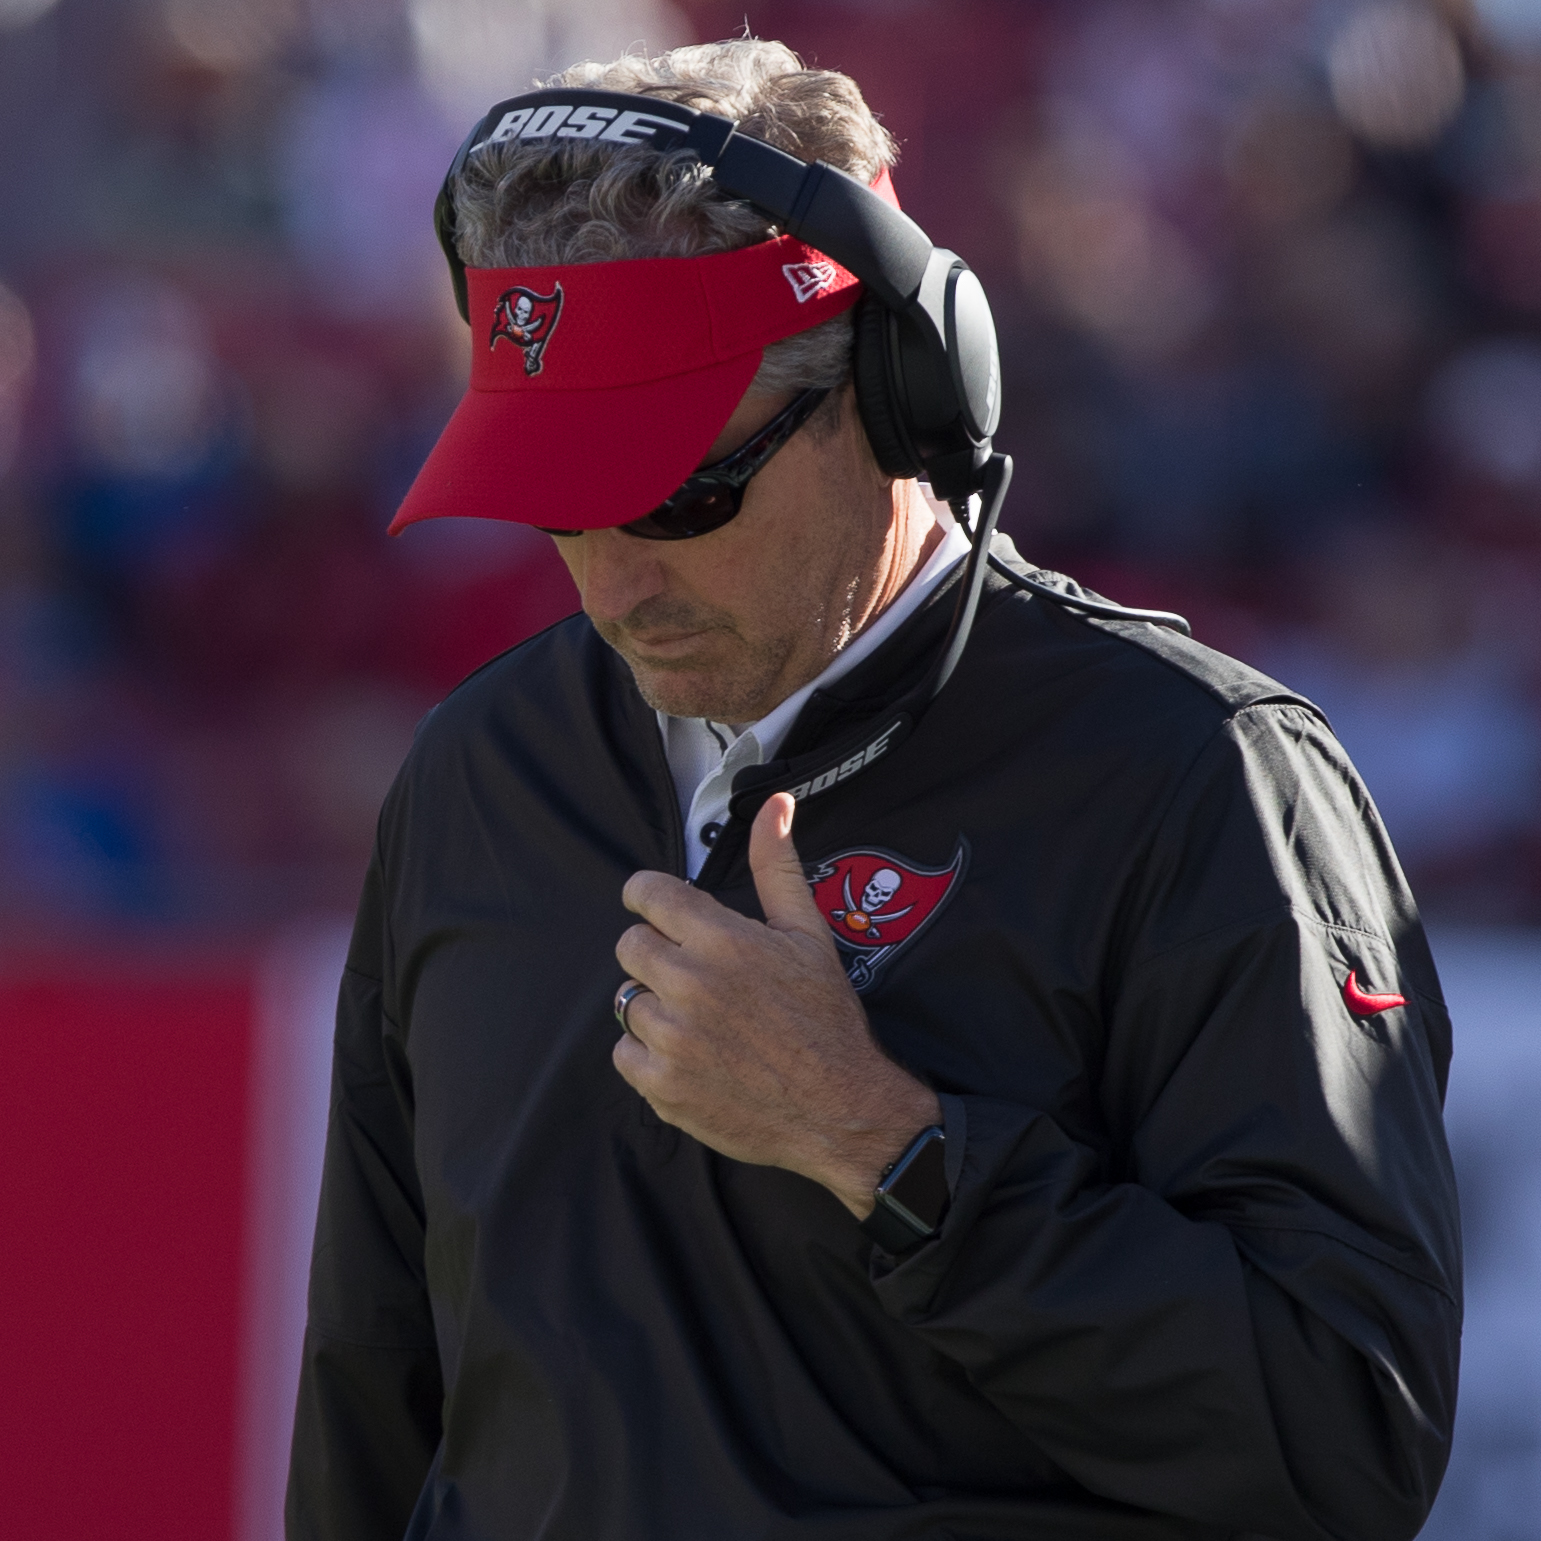 Dirk Koetter watched his team lose again./STEVEN MUNCIE